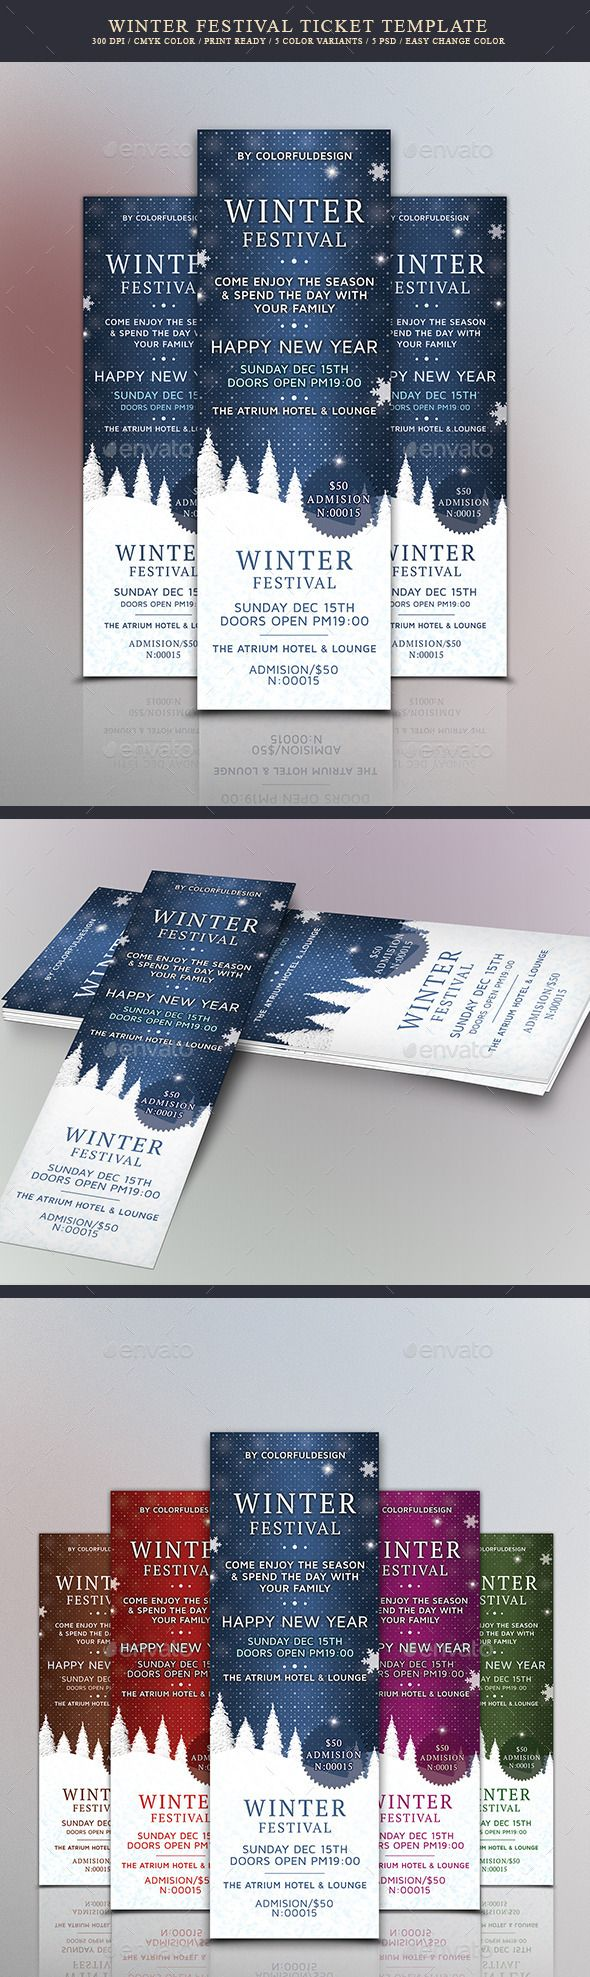 Concert Ticket Template Free Download Amazing 139 Best Invitation Design Images On Pinterest  Christmas Parties .